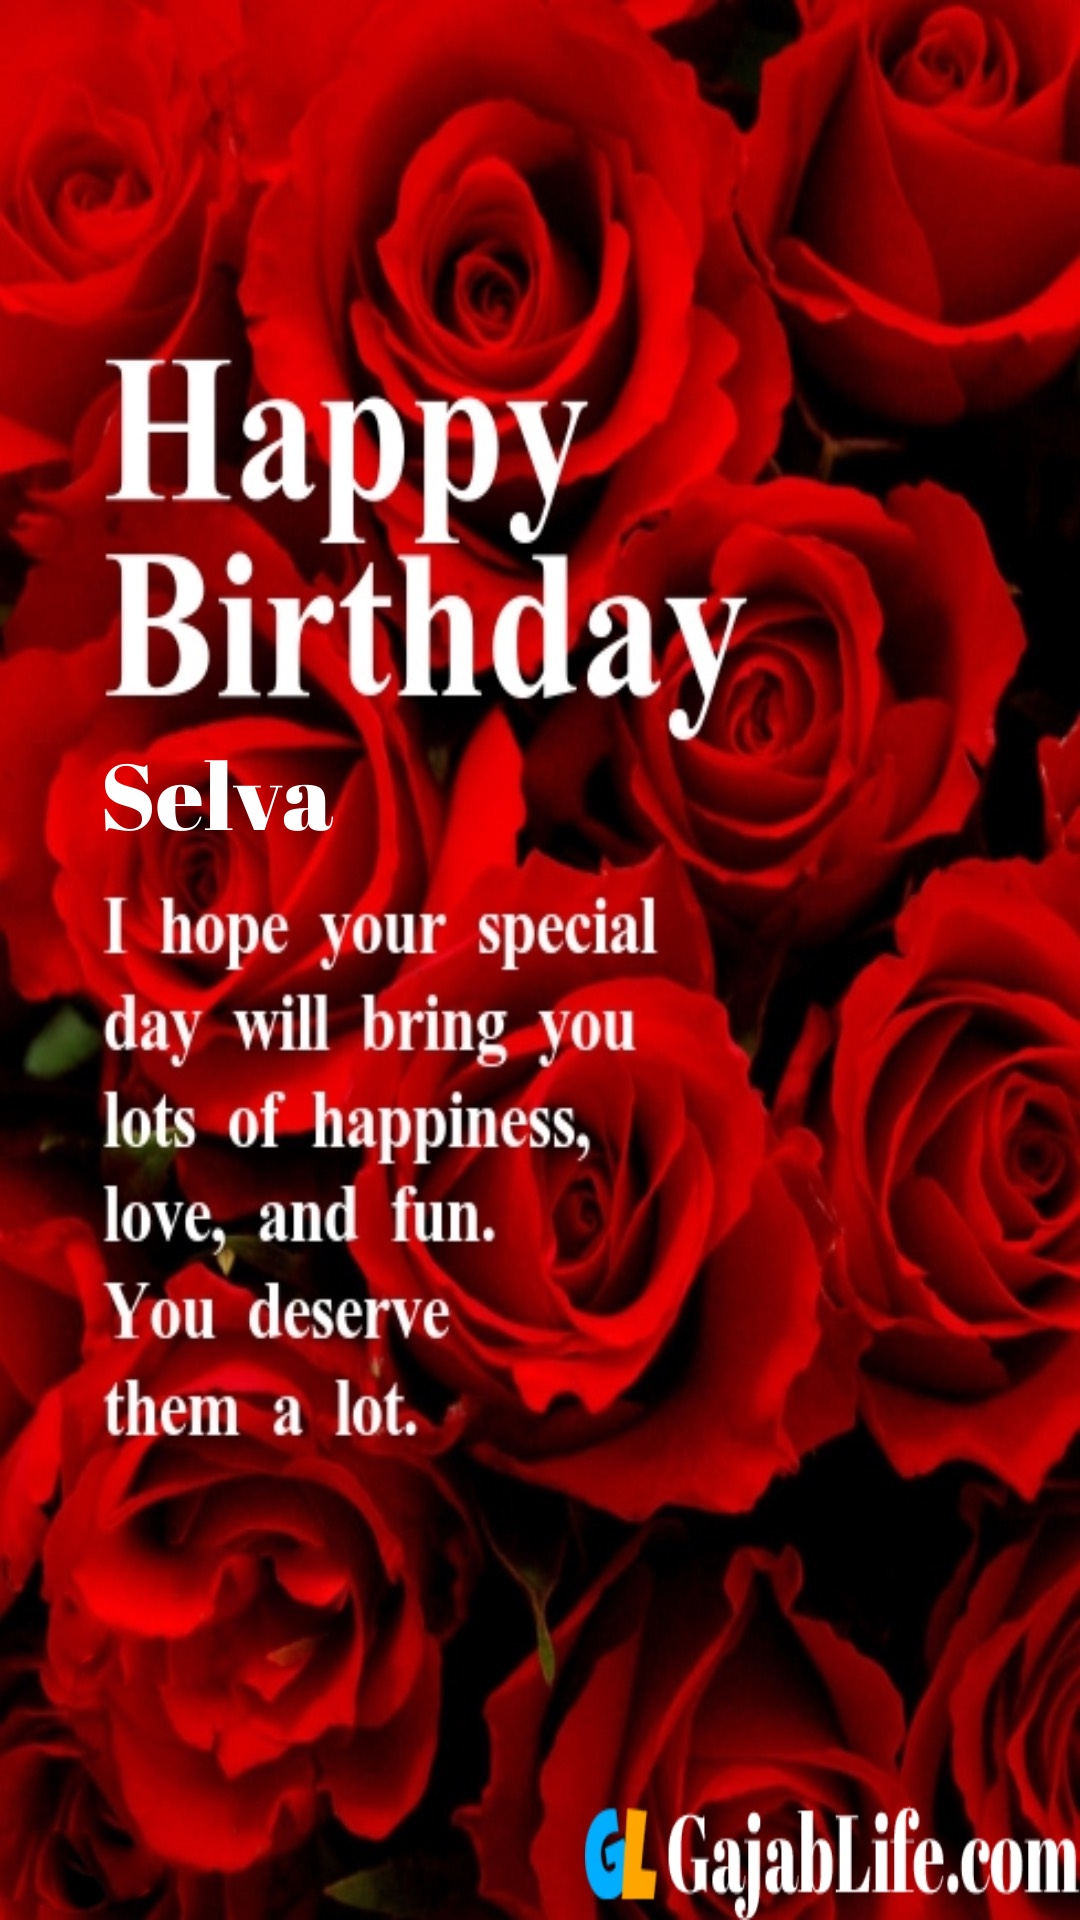 Selva birthday greeting card with rose & love